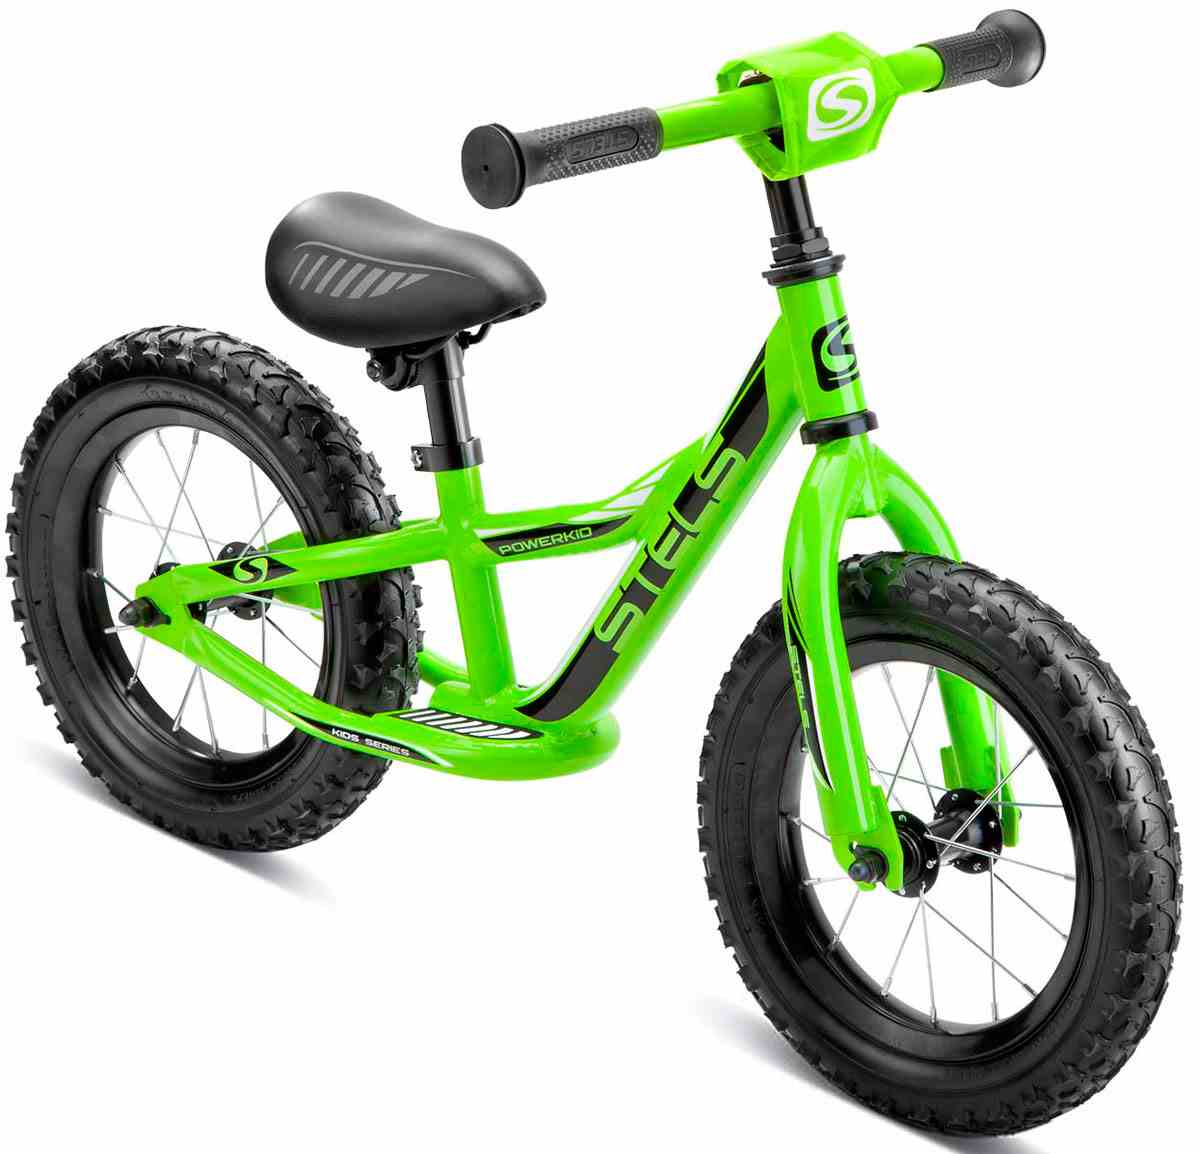 Stels Powerkid 12 green